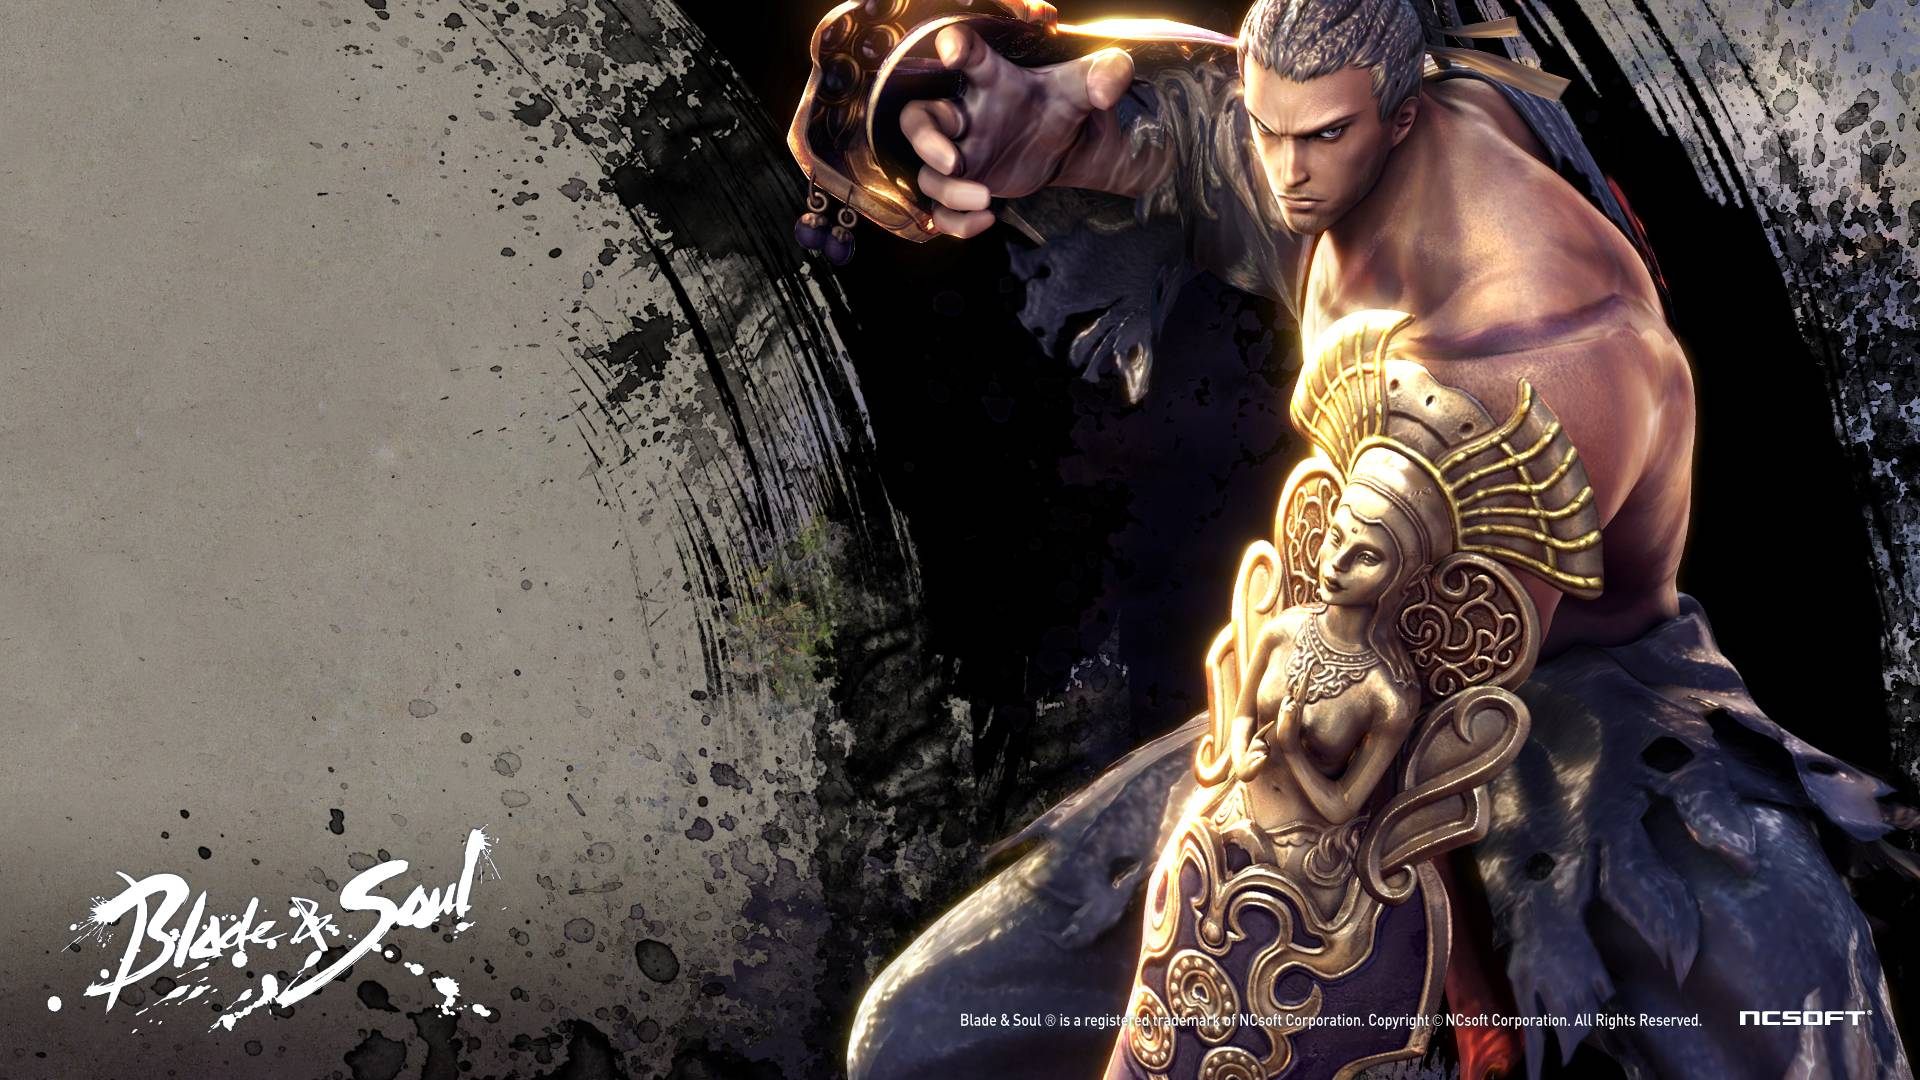 Blade And Soul Wallpapers - Wallpaper Cave